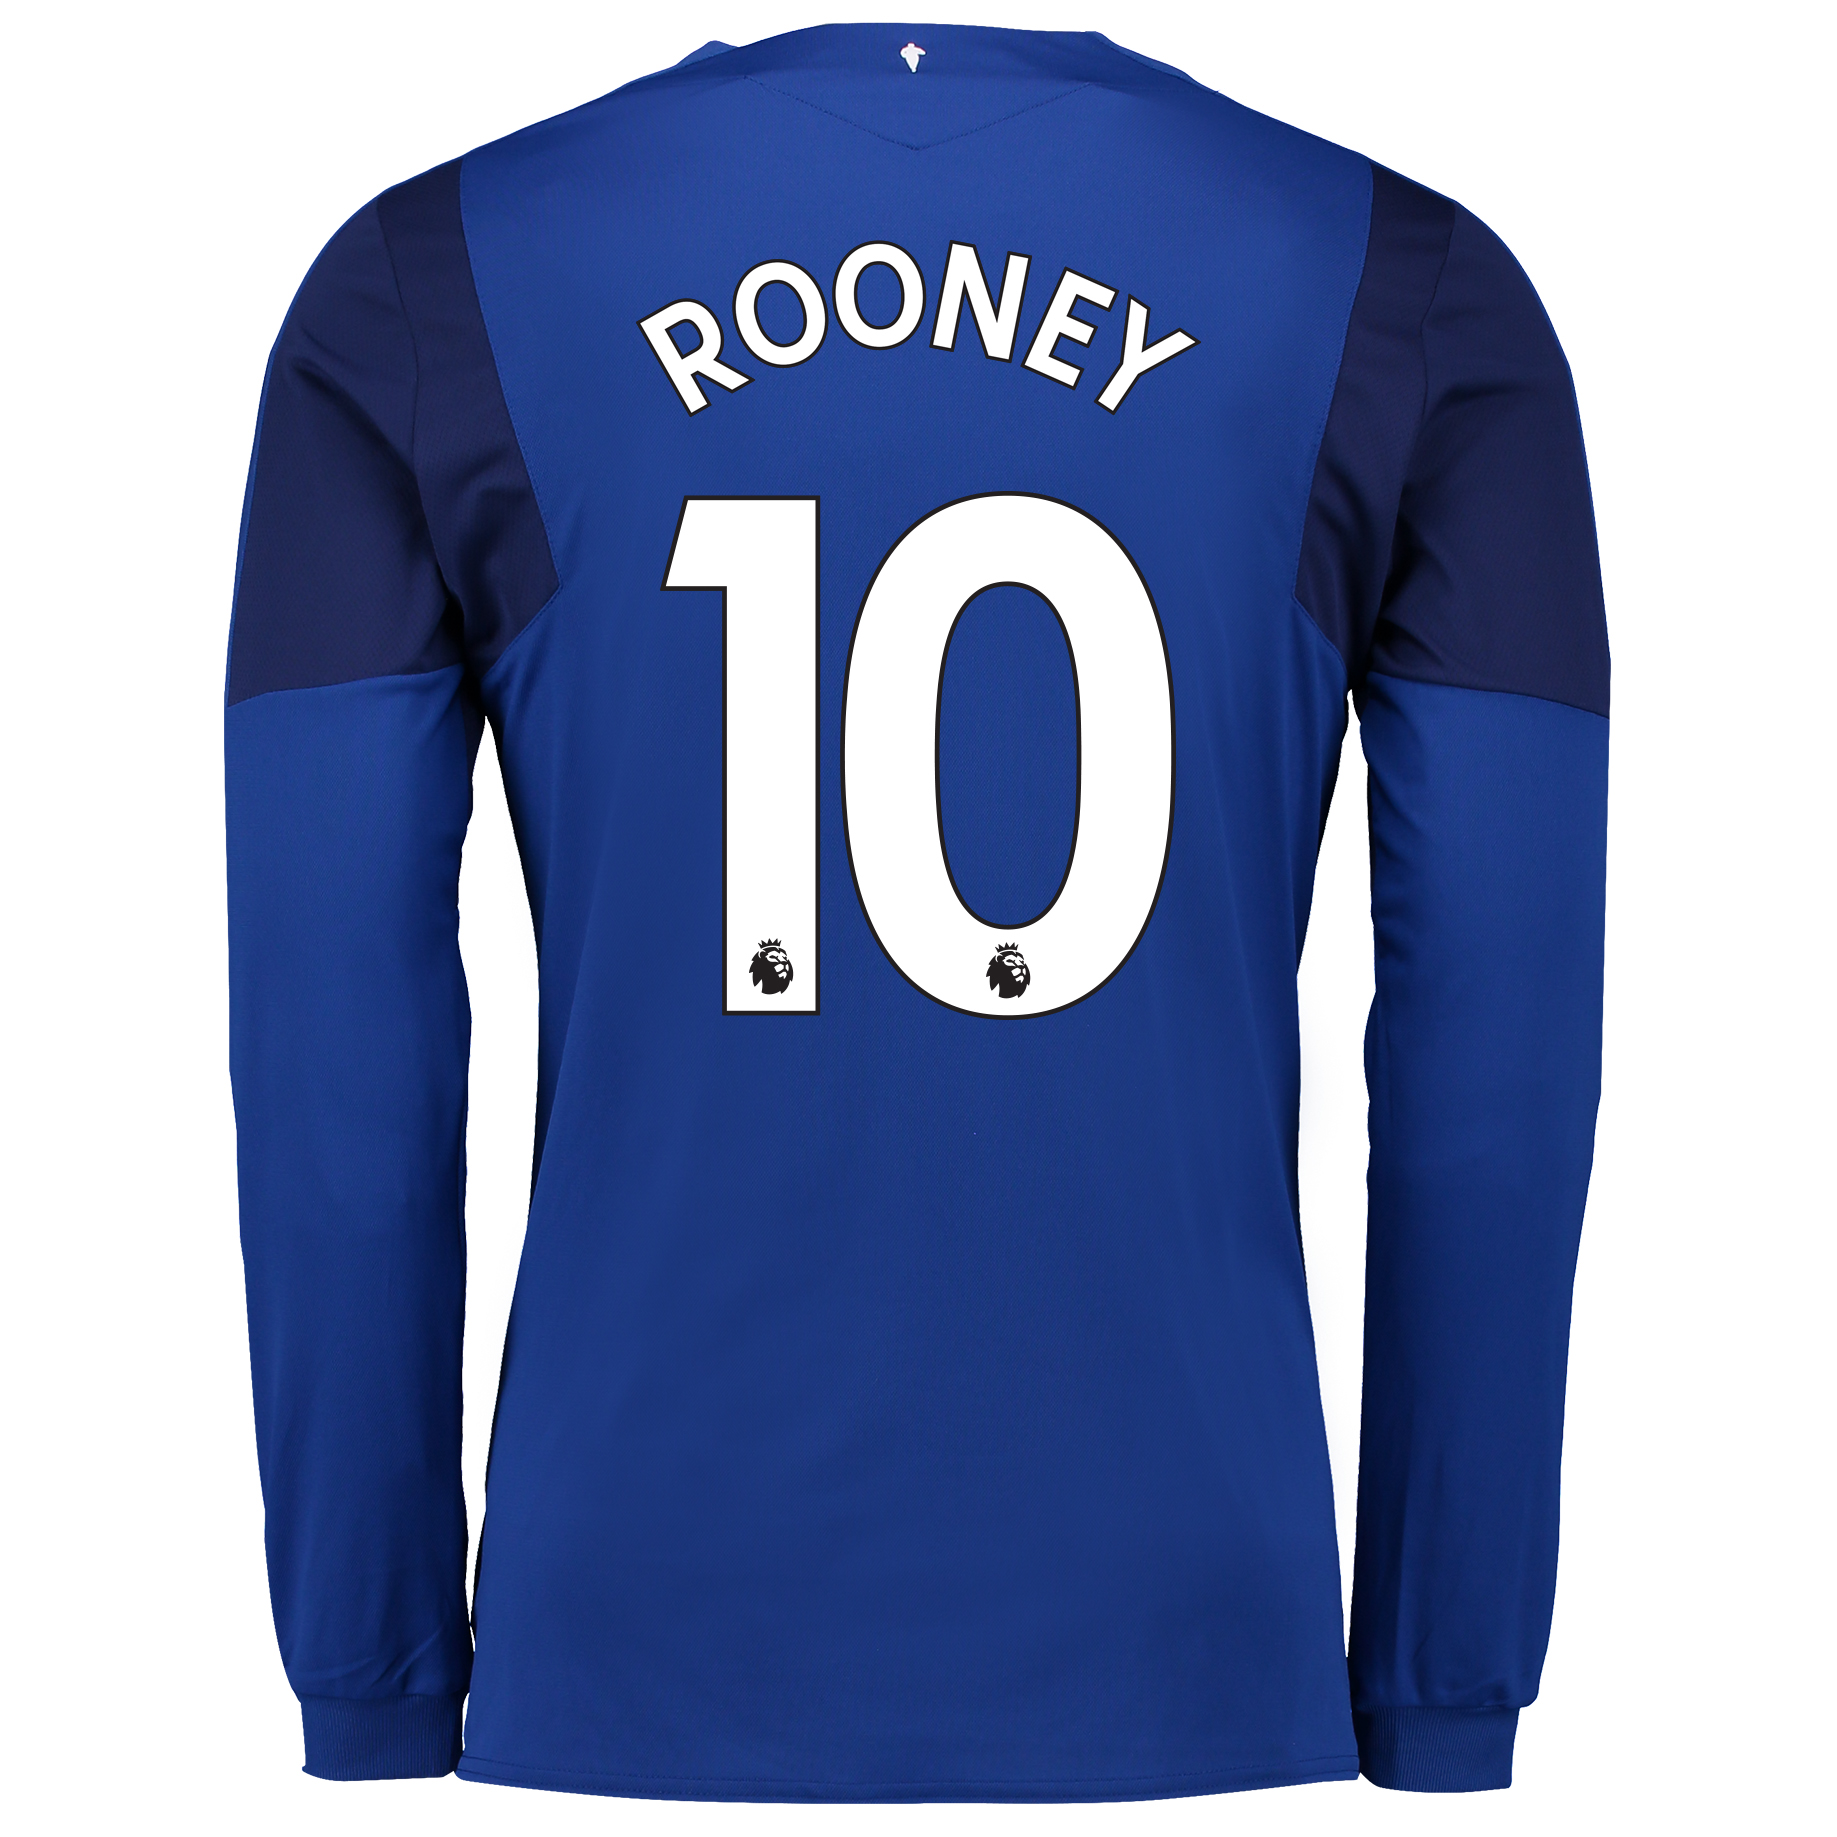 Everton Home Shirt 2017/18 - Long Sleeved with Rooney 10 printing